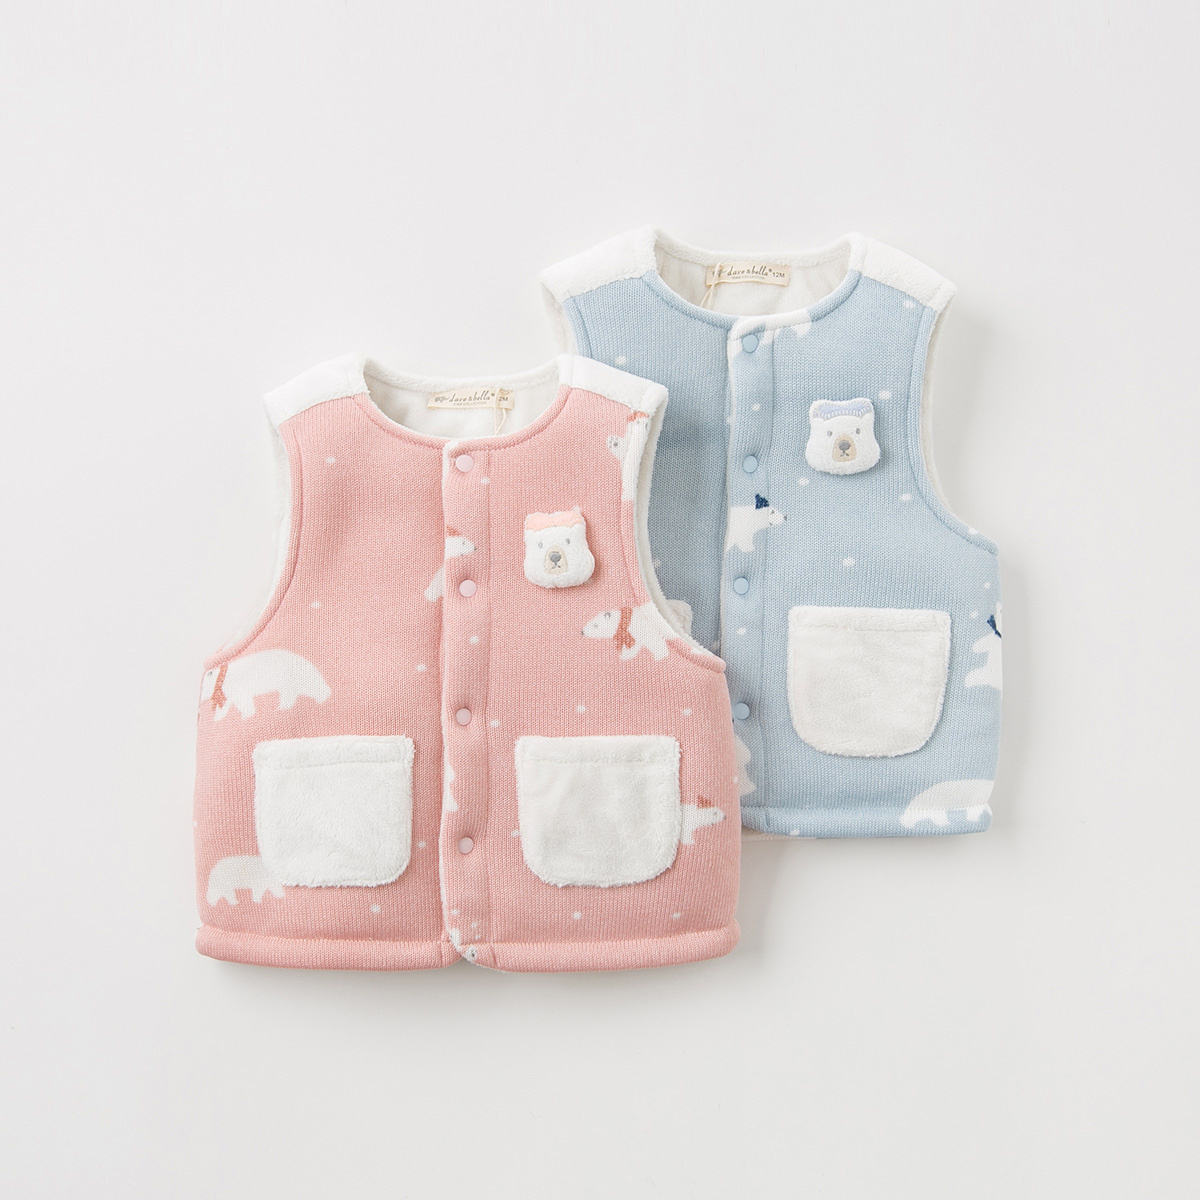 Anti season warehouse clearing, David Bela children's vest, autumn and winter, baby girl, cotton padded tank top, plush coat, male